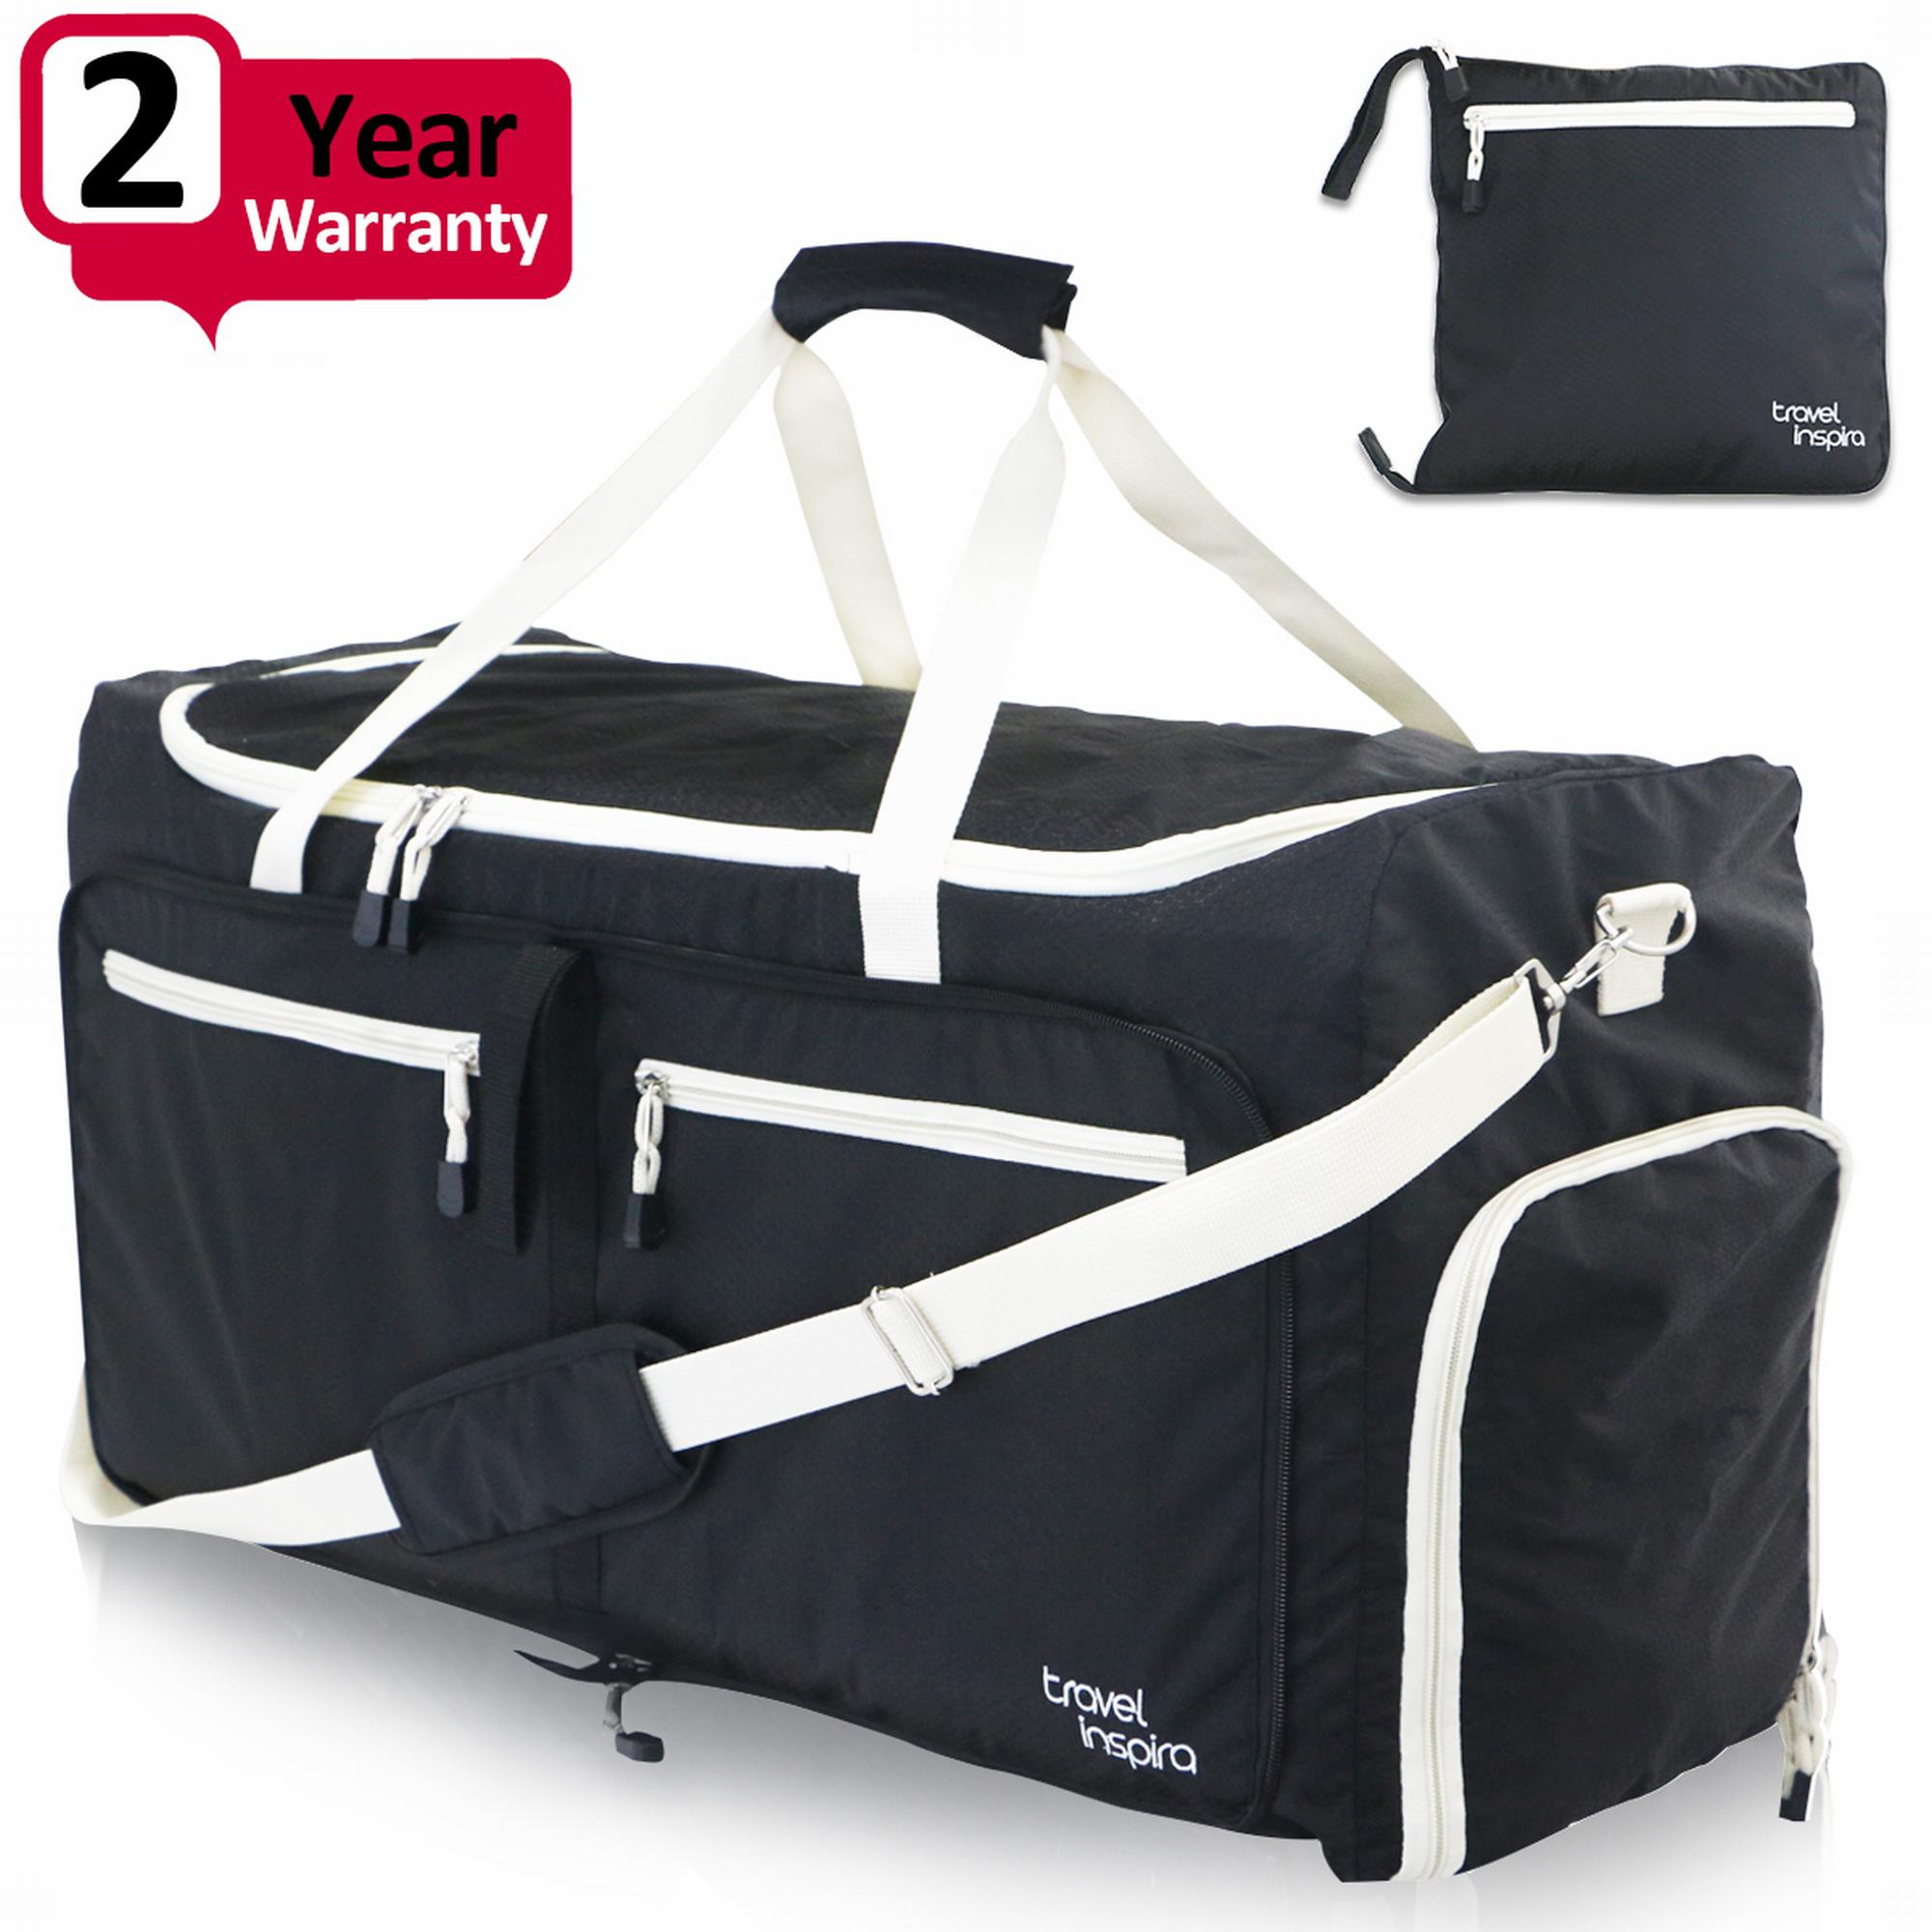 Travel Inspira Large Foldable Duffel Bag XL For Packable Duffle Luggage Gym Sports by